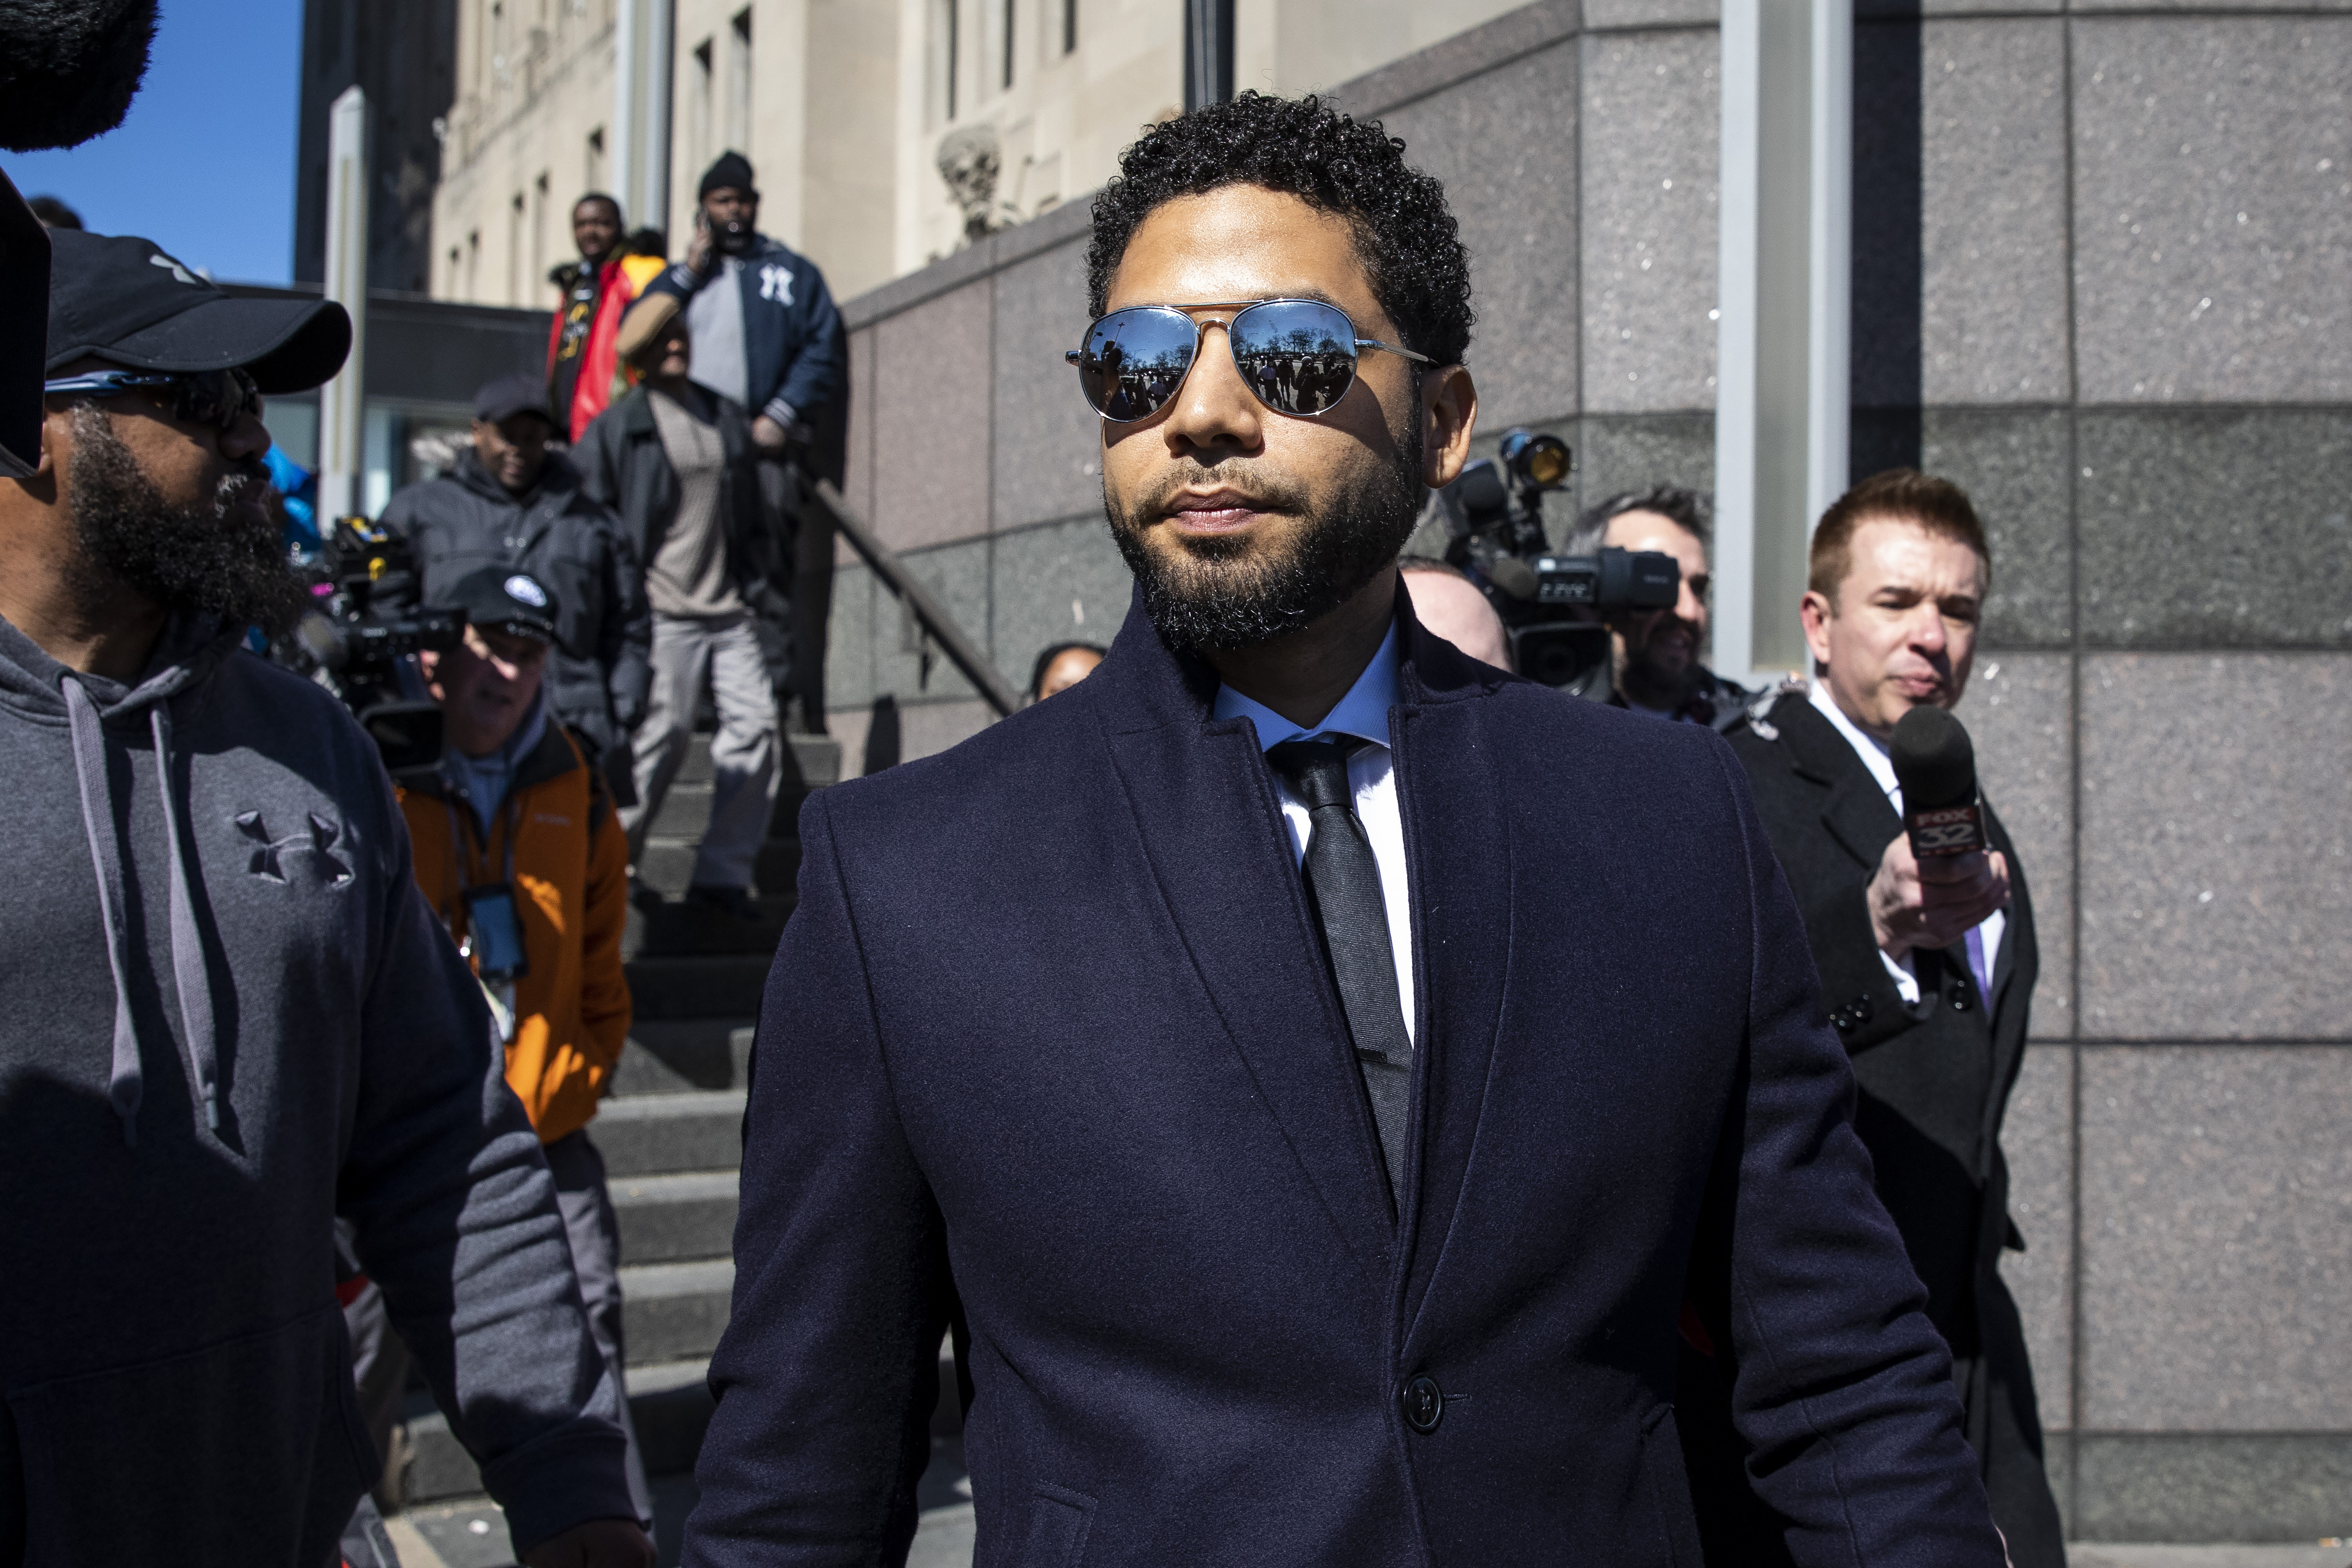 Actor Jussie Smollett leaves the Leighton Criminal Courthouse after prosecutors dropped all charges against him.